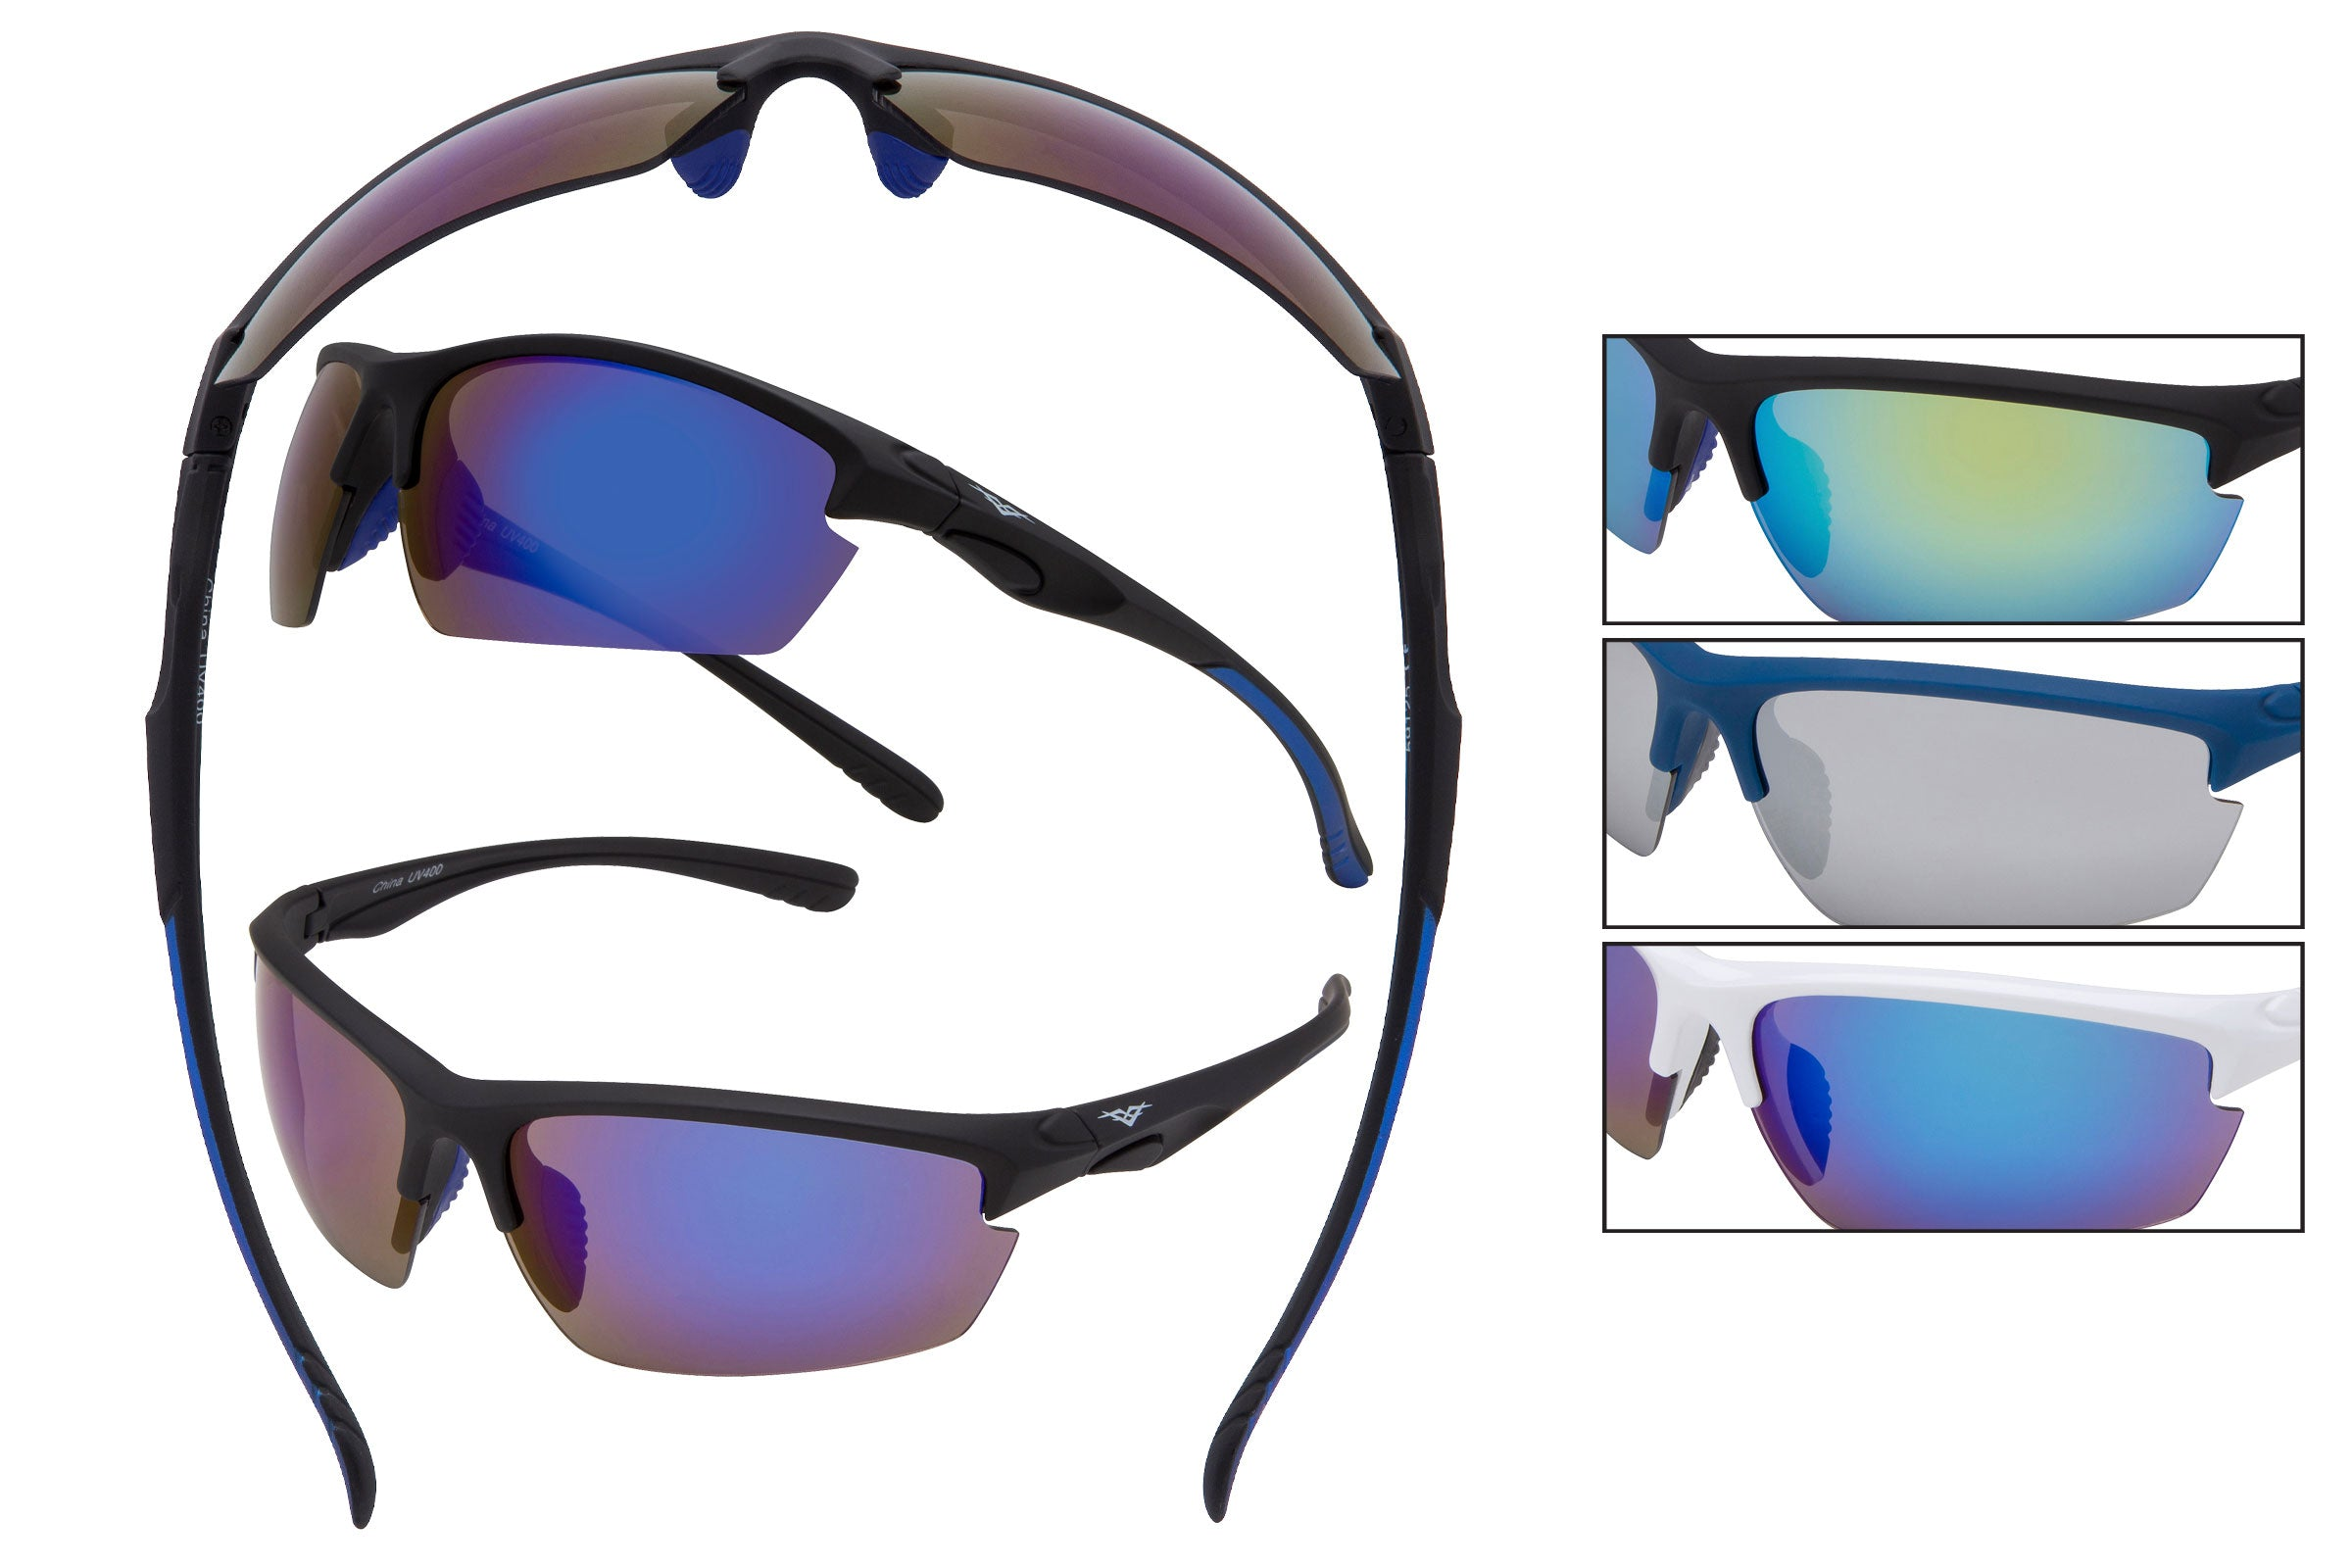 59125 - VertX PC Sport Wrap Sunglasses